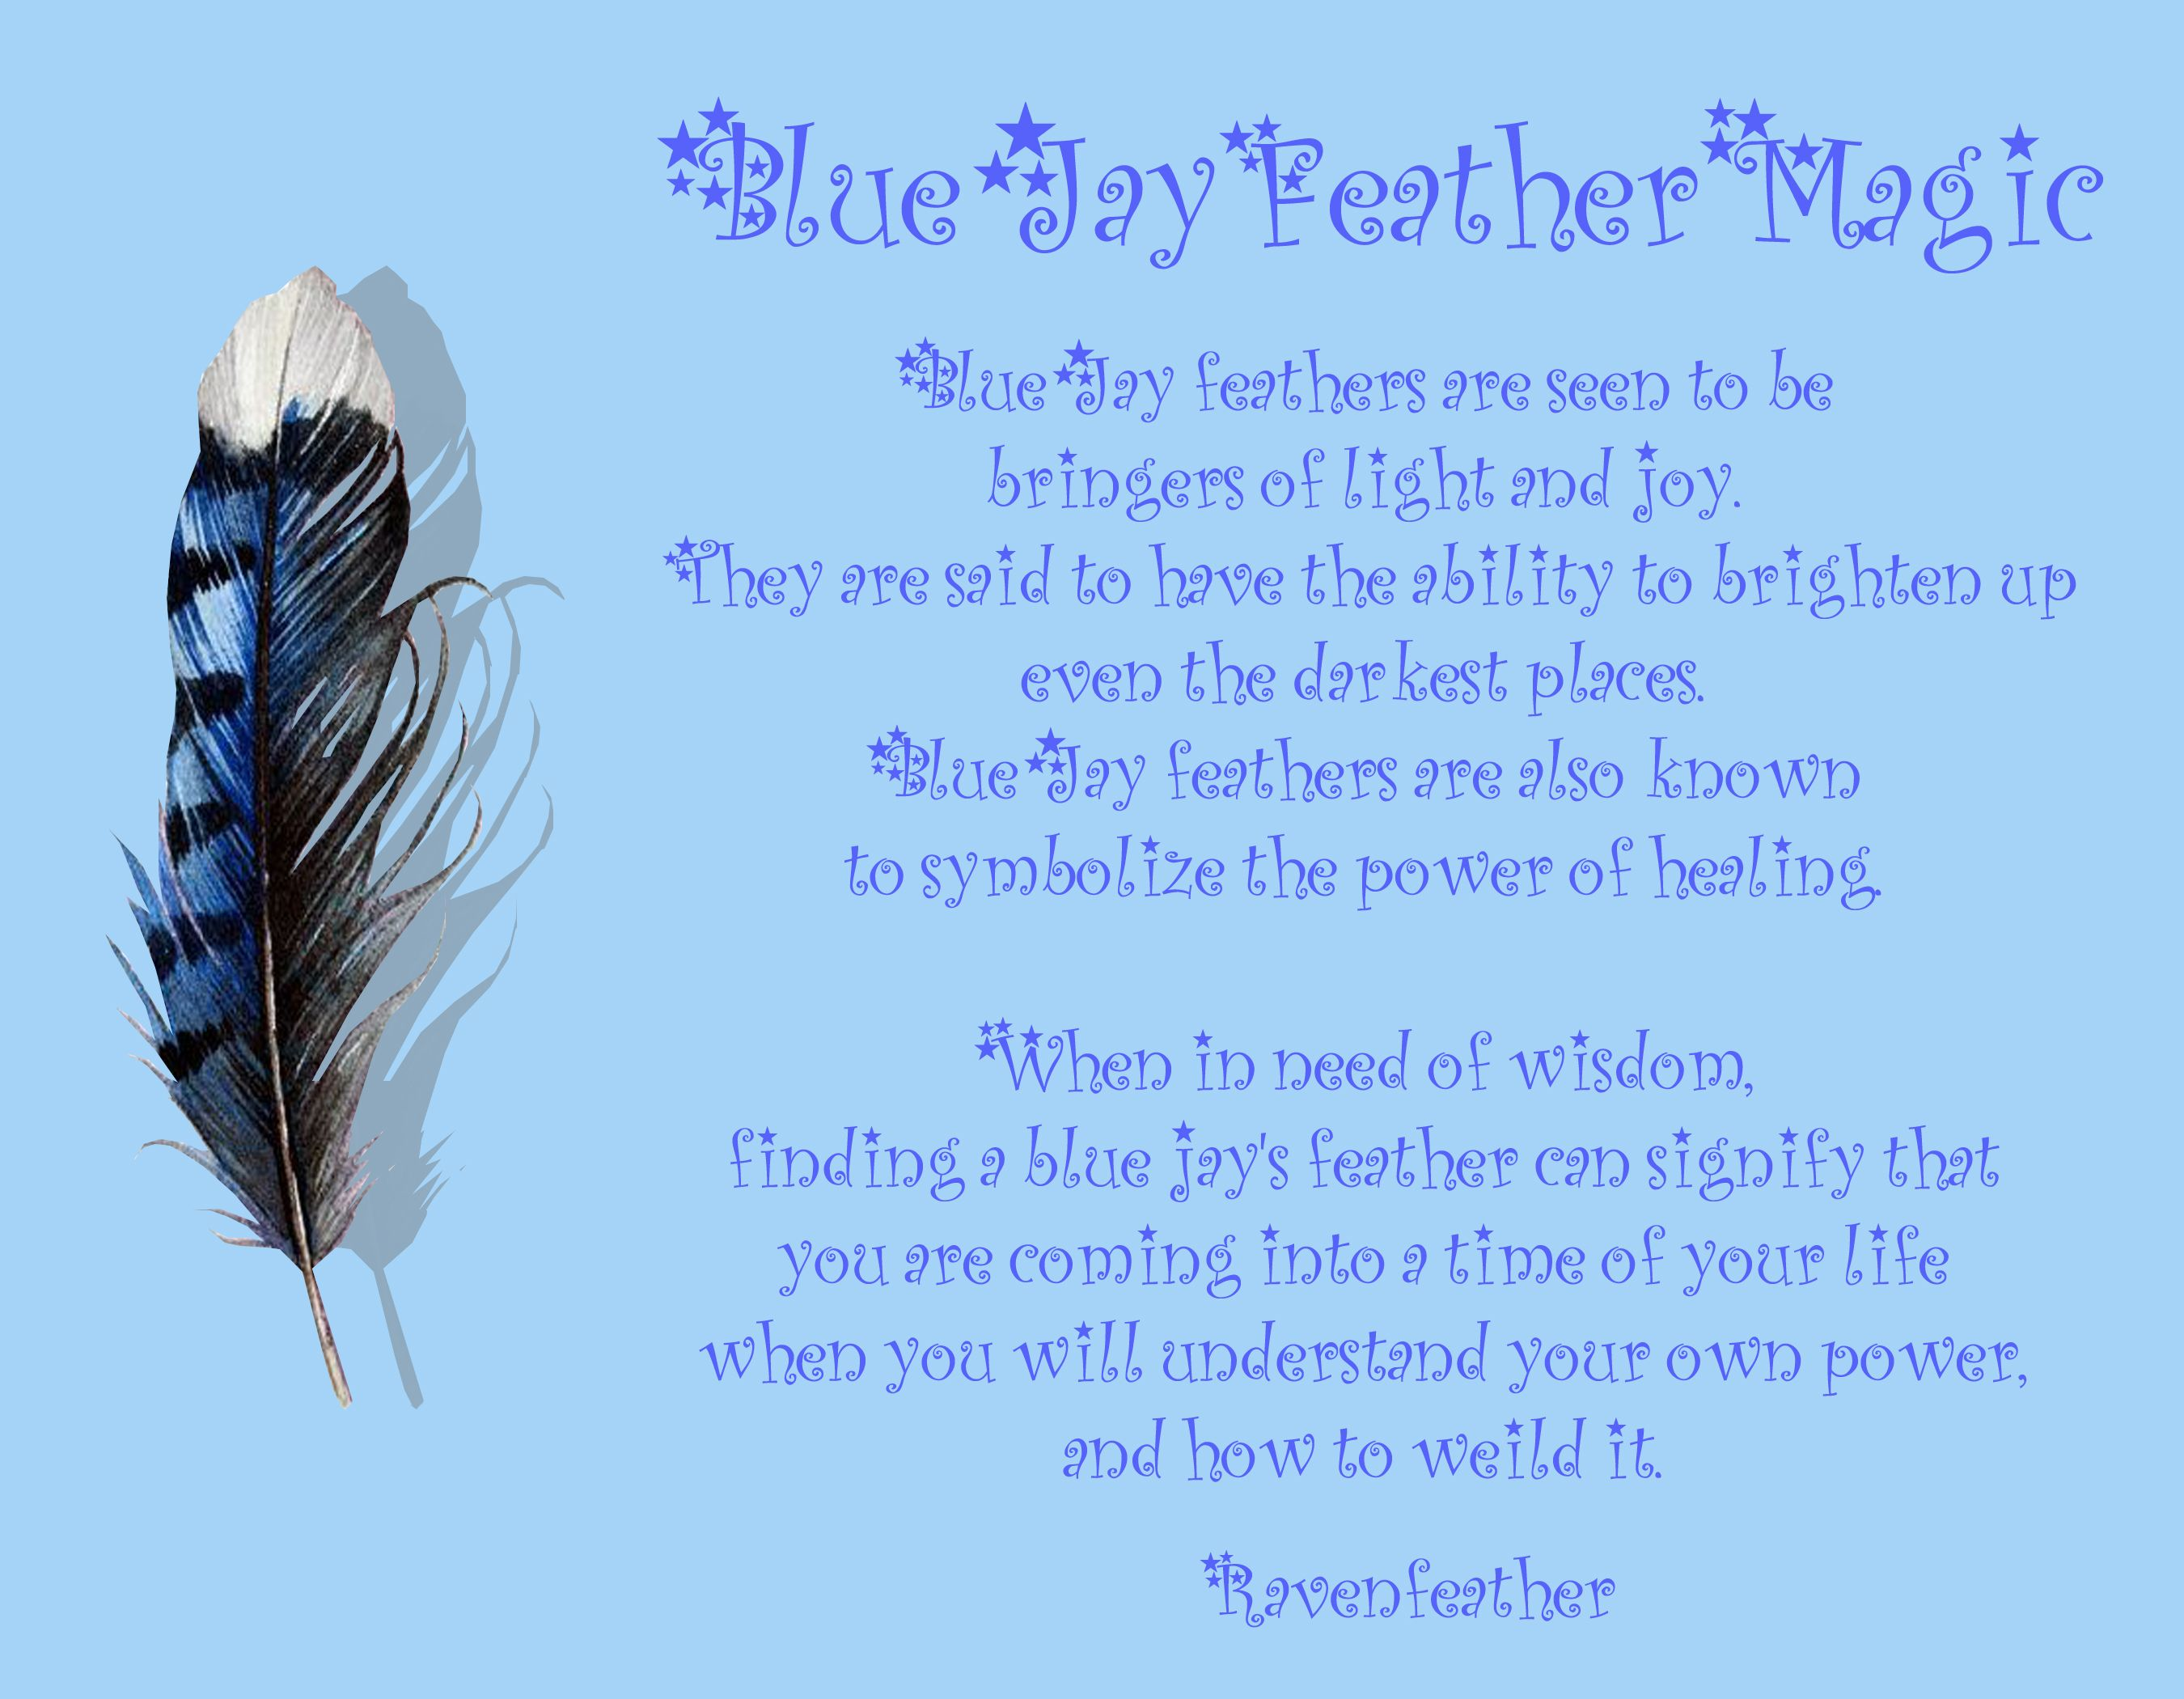 Blue jay feather magic history pagan wicca pinterest for Portent meaning